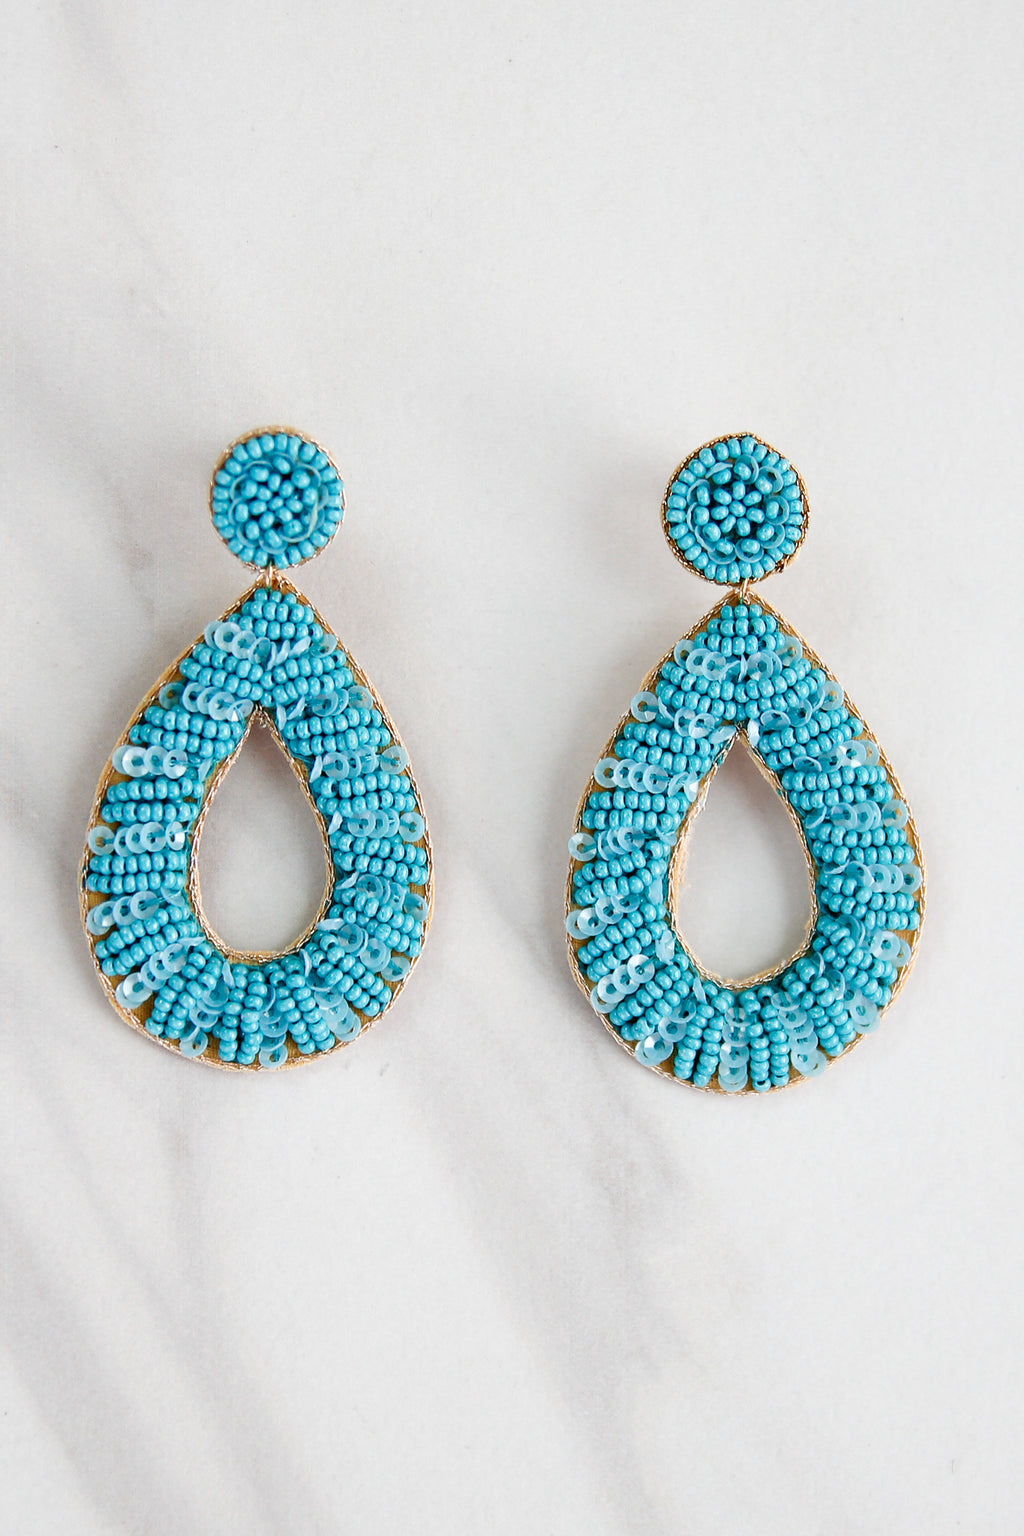 Atlantic Earrings - Turquoise